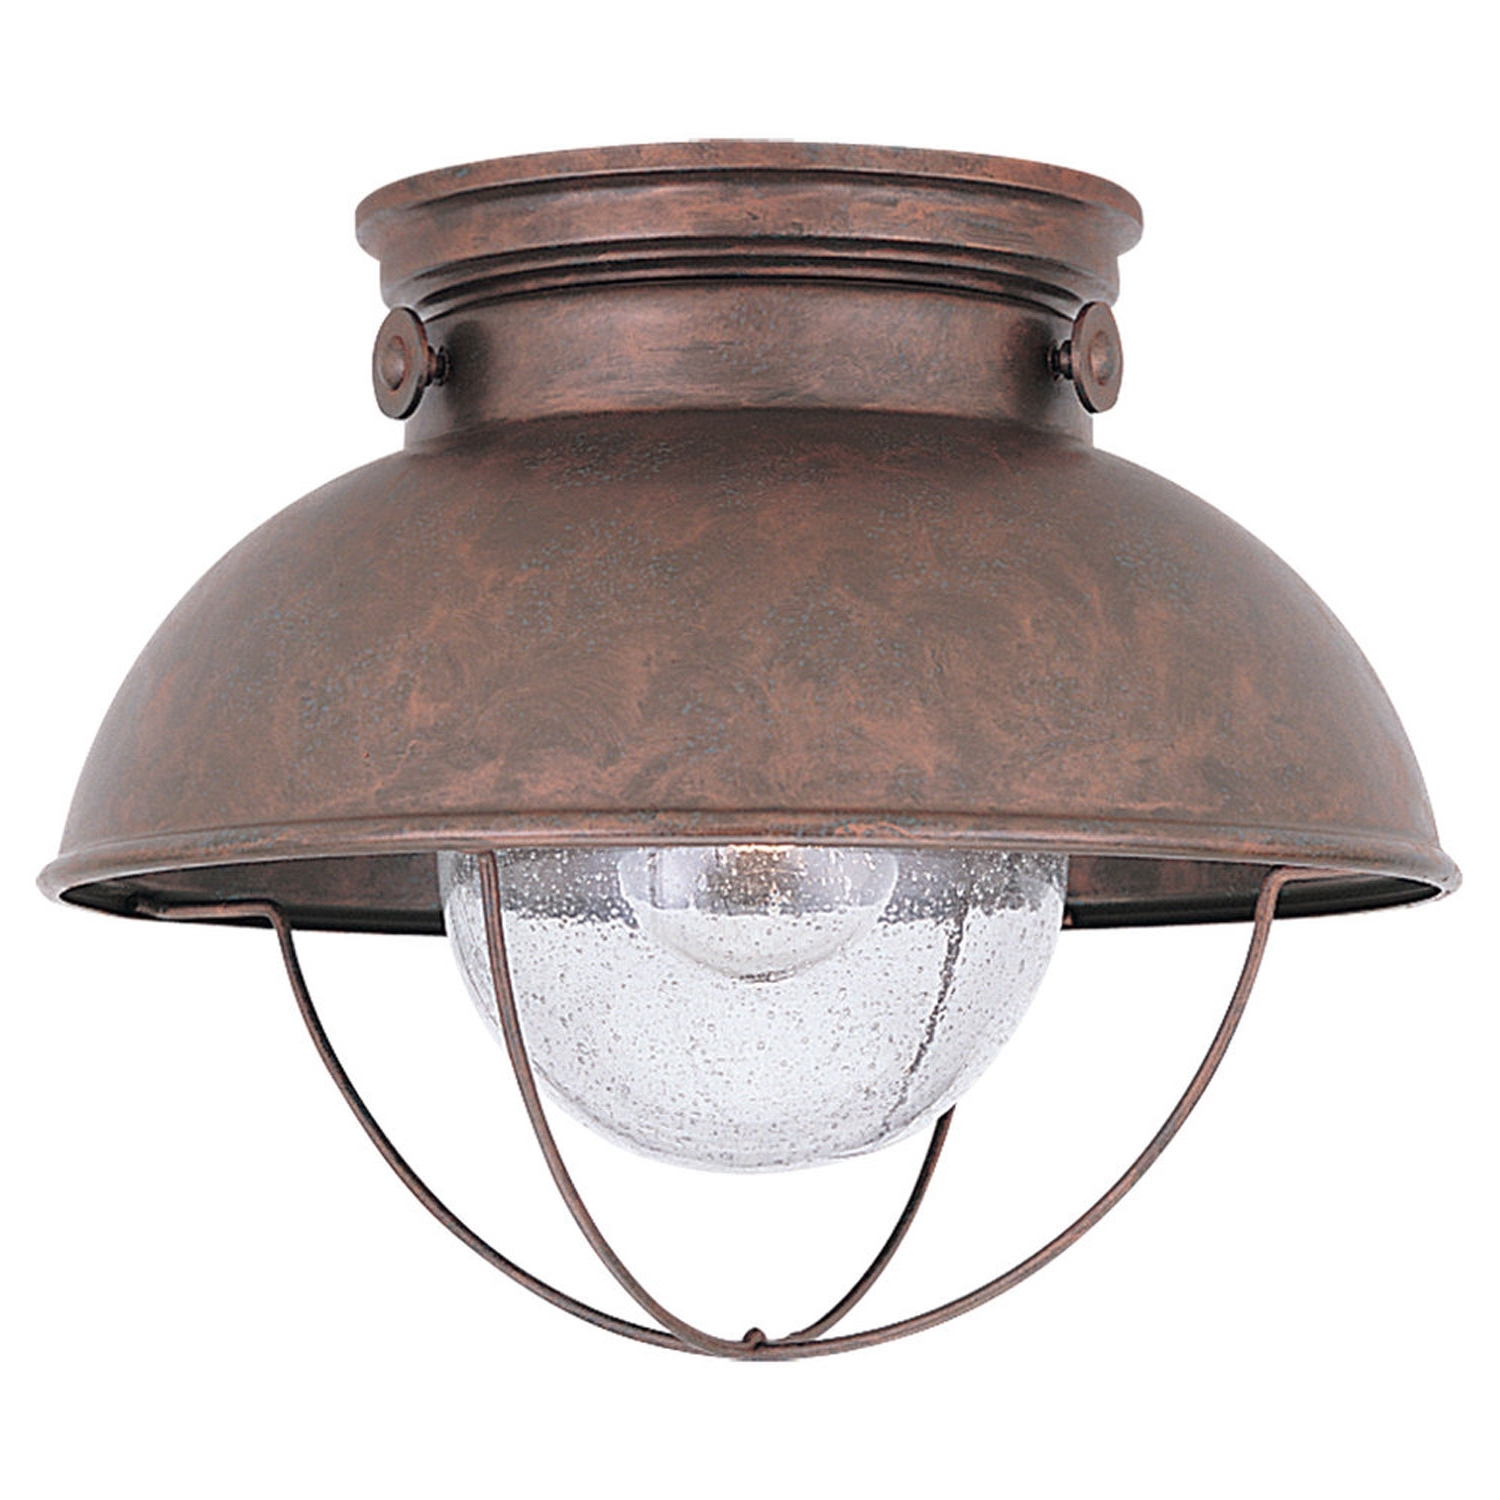 Sea Gull Lighting Sebring Weathered Copper Outdoor Ceiling Light On Sale Regarding Best And Newest Cheap Outdoor Ceiling Lights (View 15 of 20)